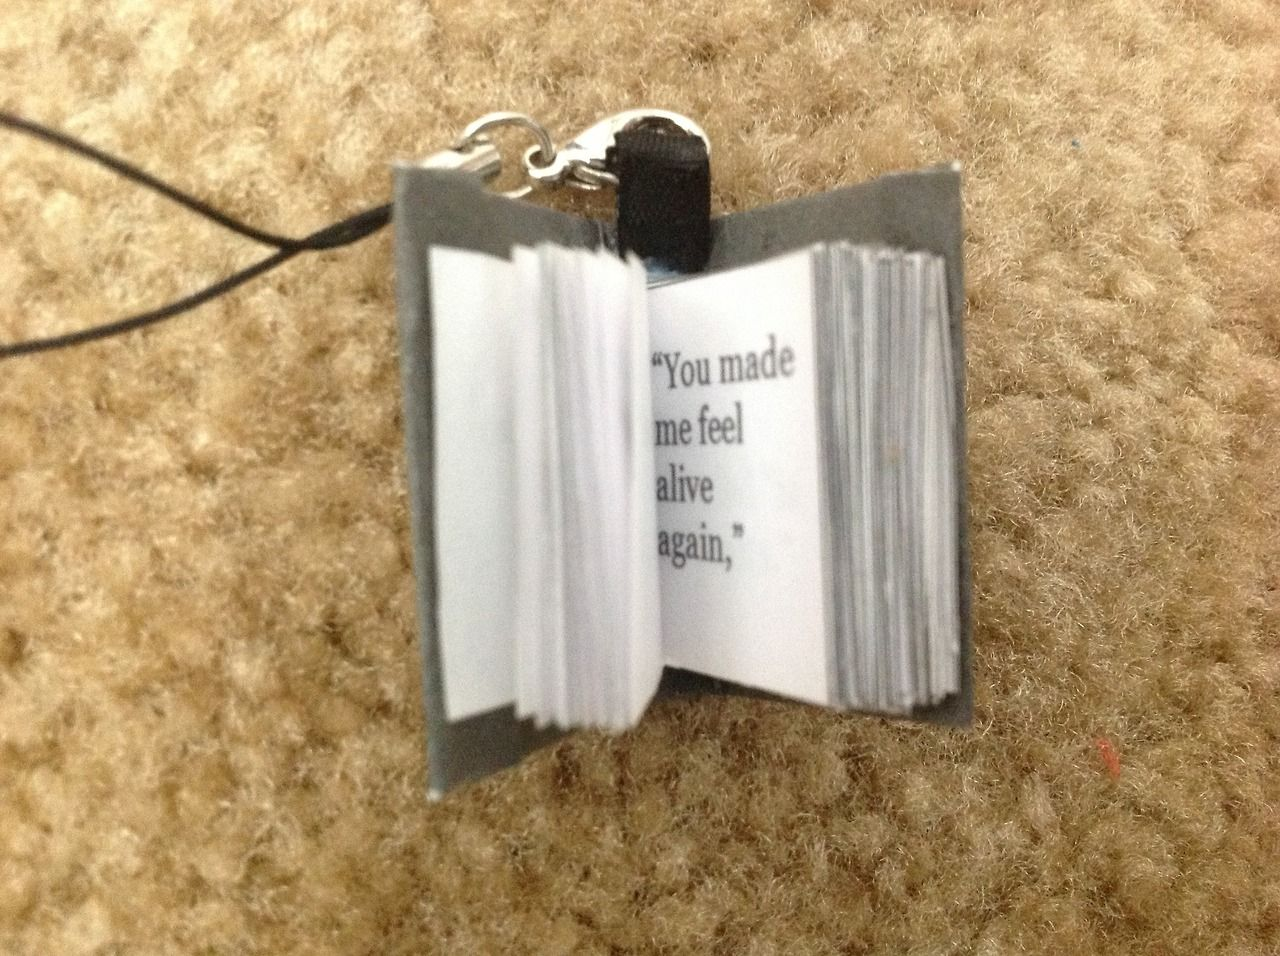 book charms with quotes from the book in it